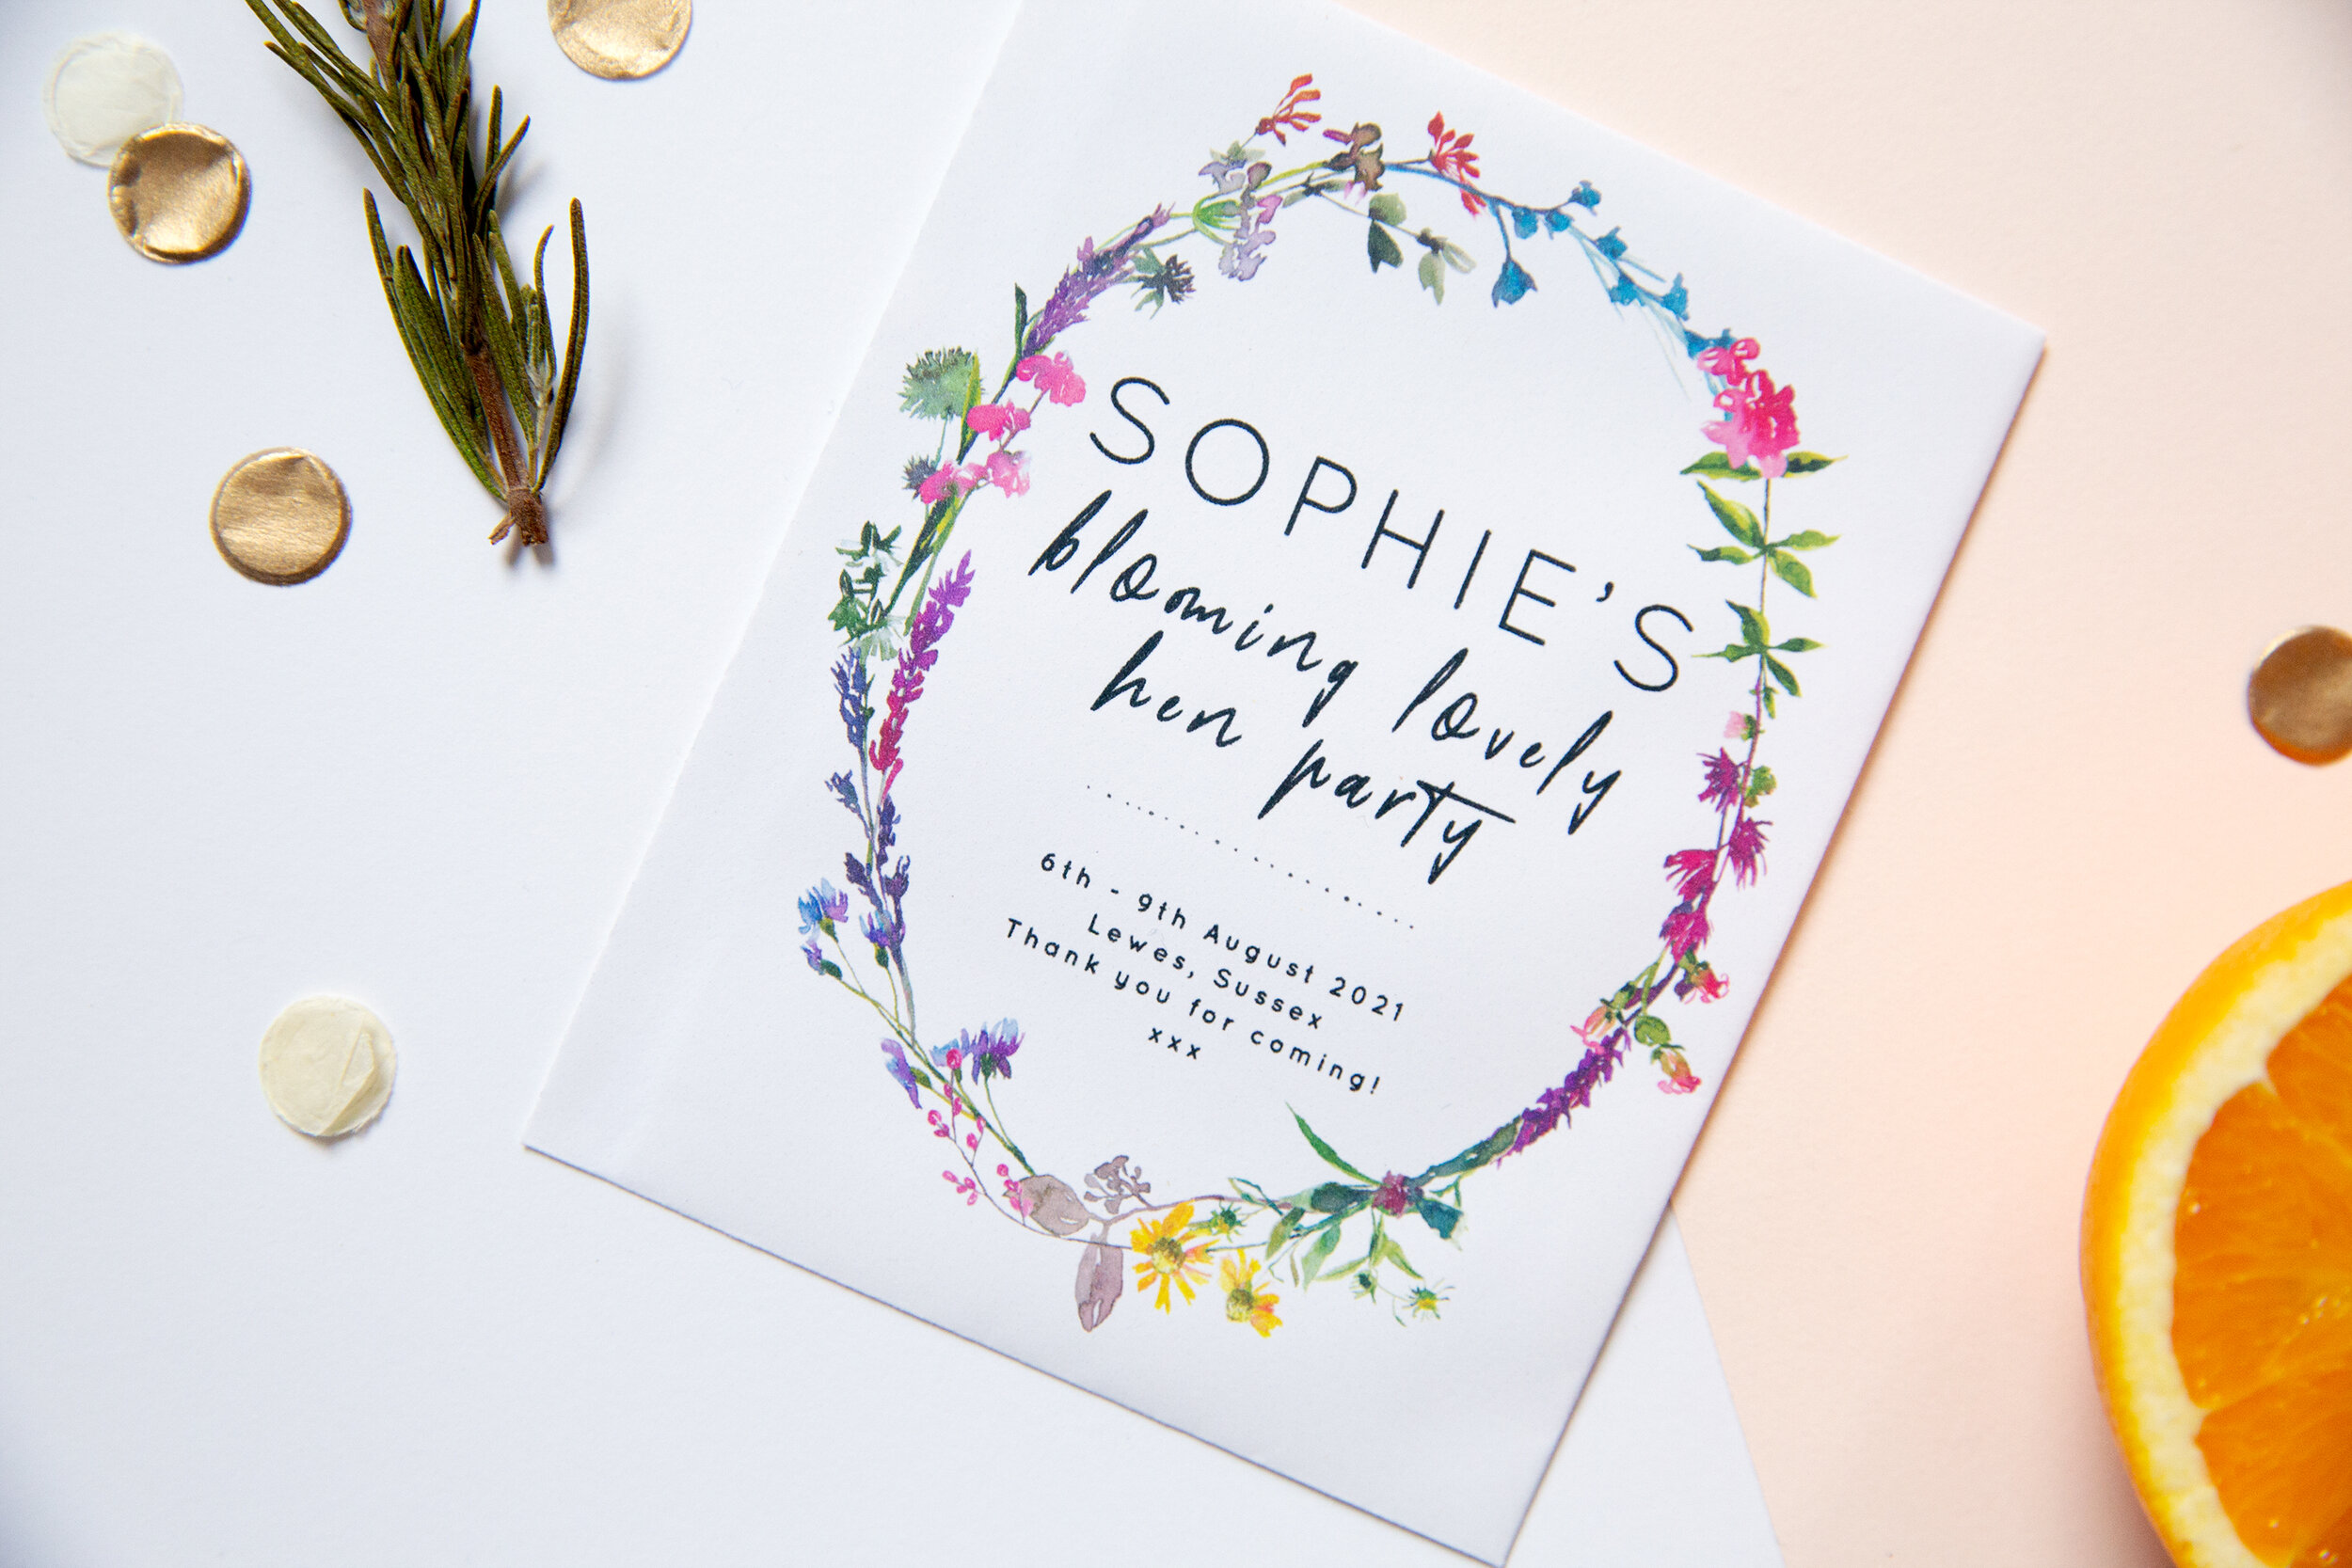 Hen Party - Sophie's blooming lovely party 4.jpg